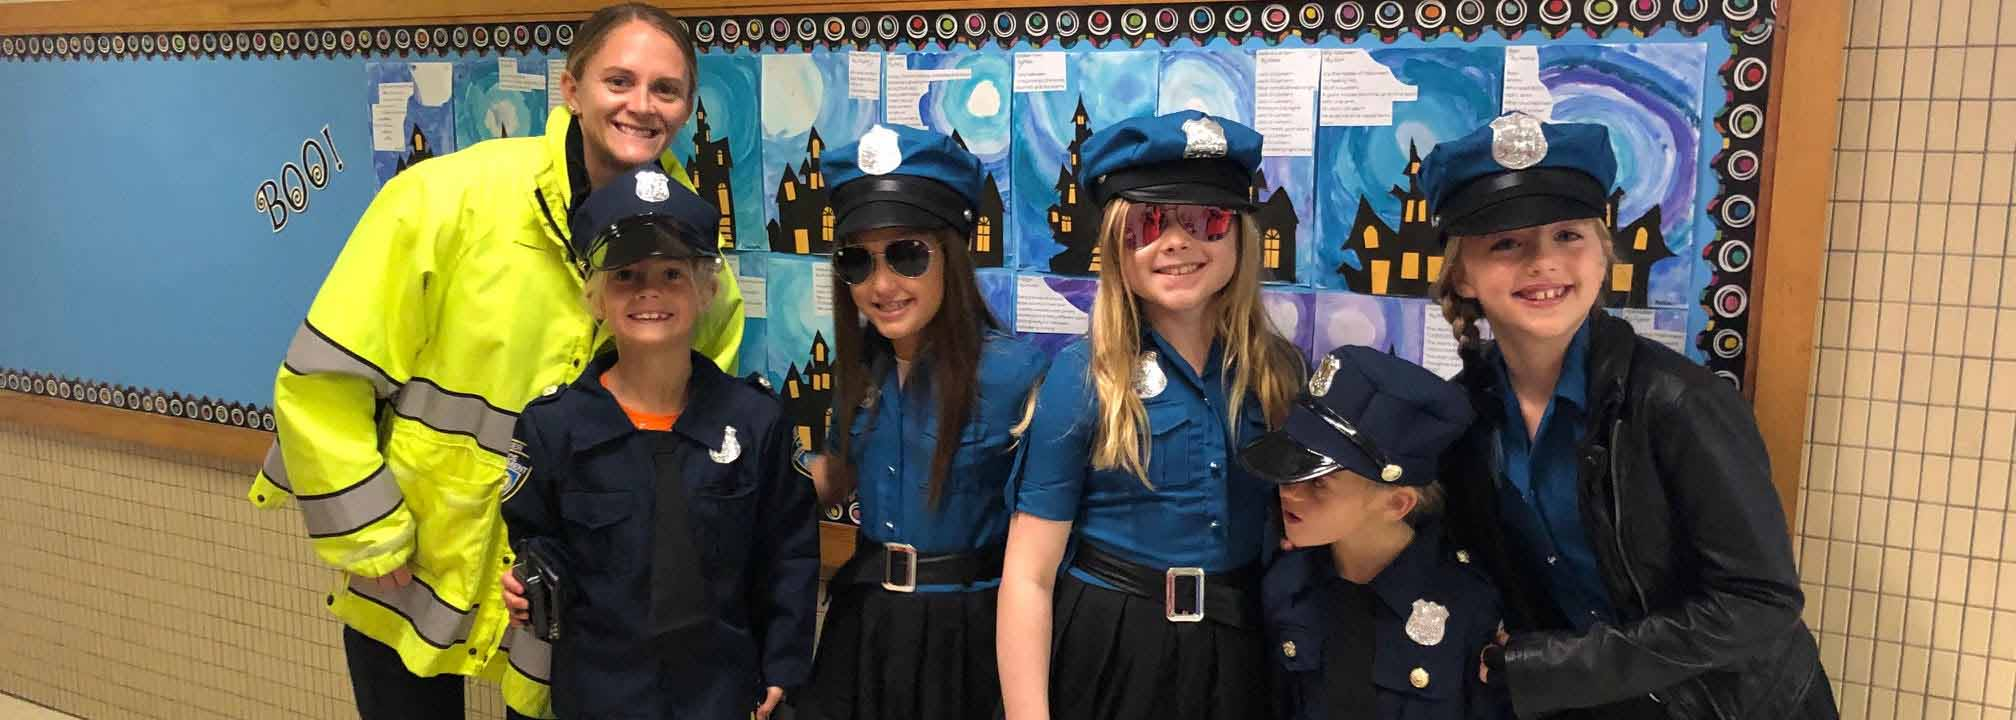 Student Dressed as Police Officers for Halloween